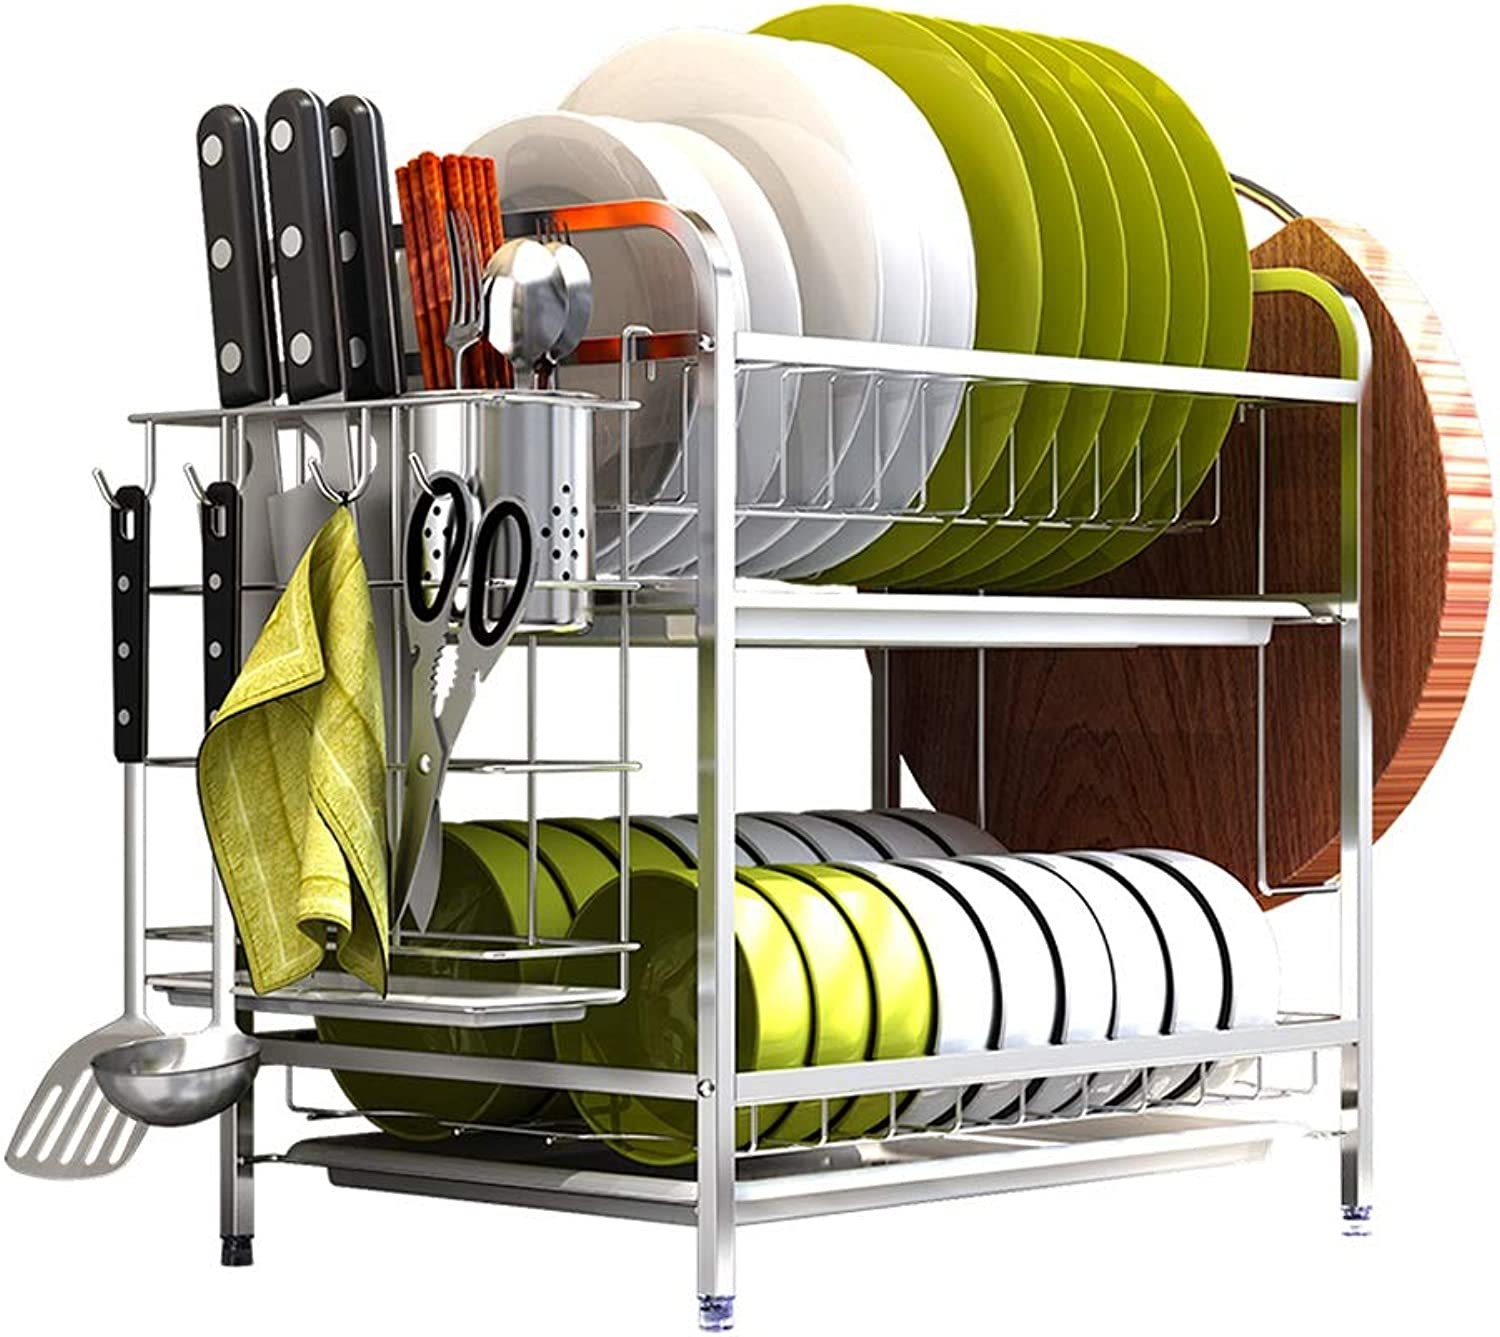 Stainless Steel Kitchen Storage Rack 2-Layer Dish Rack Cutting Board Rack